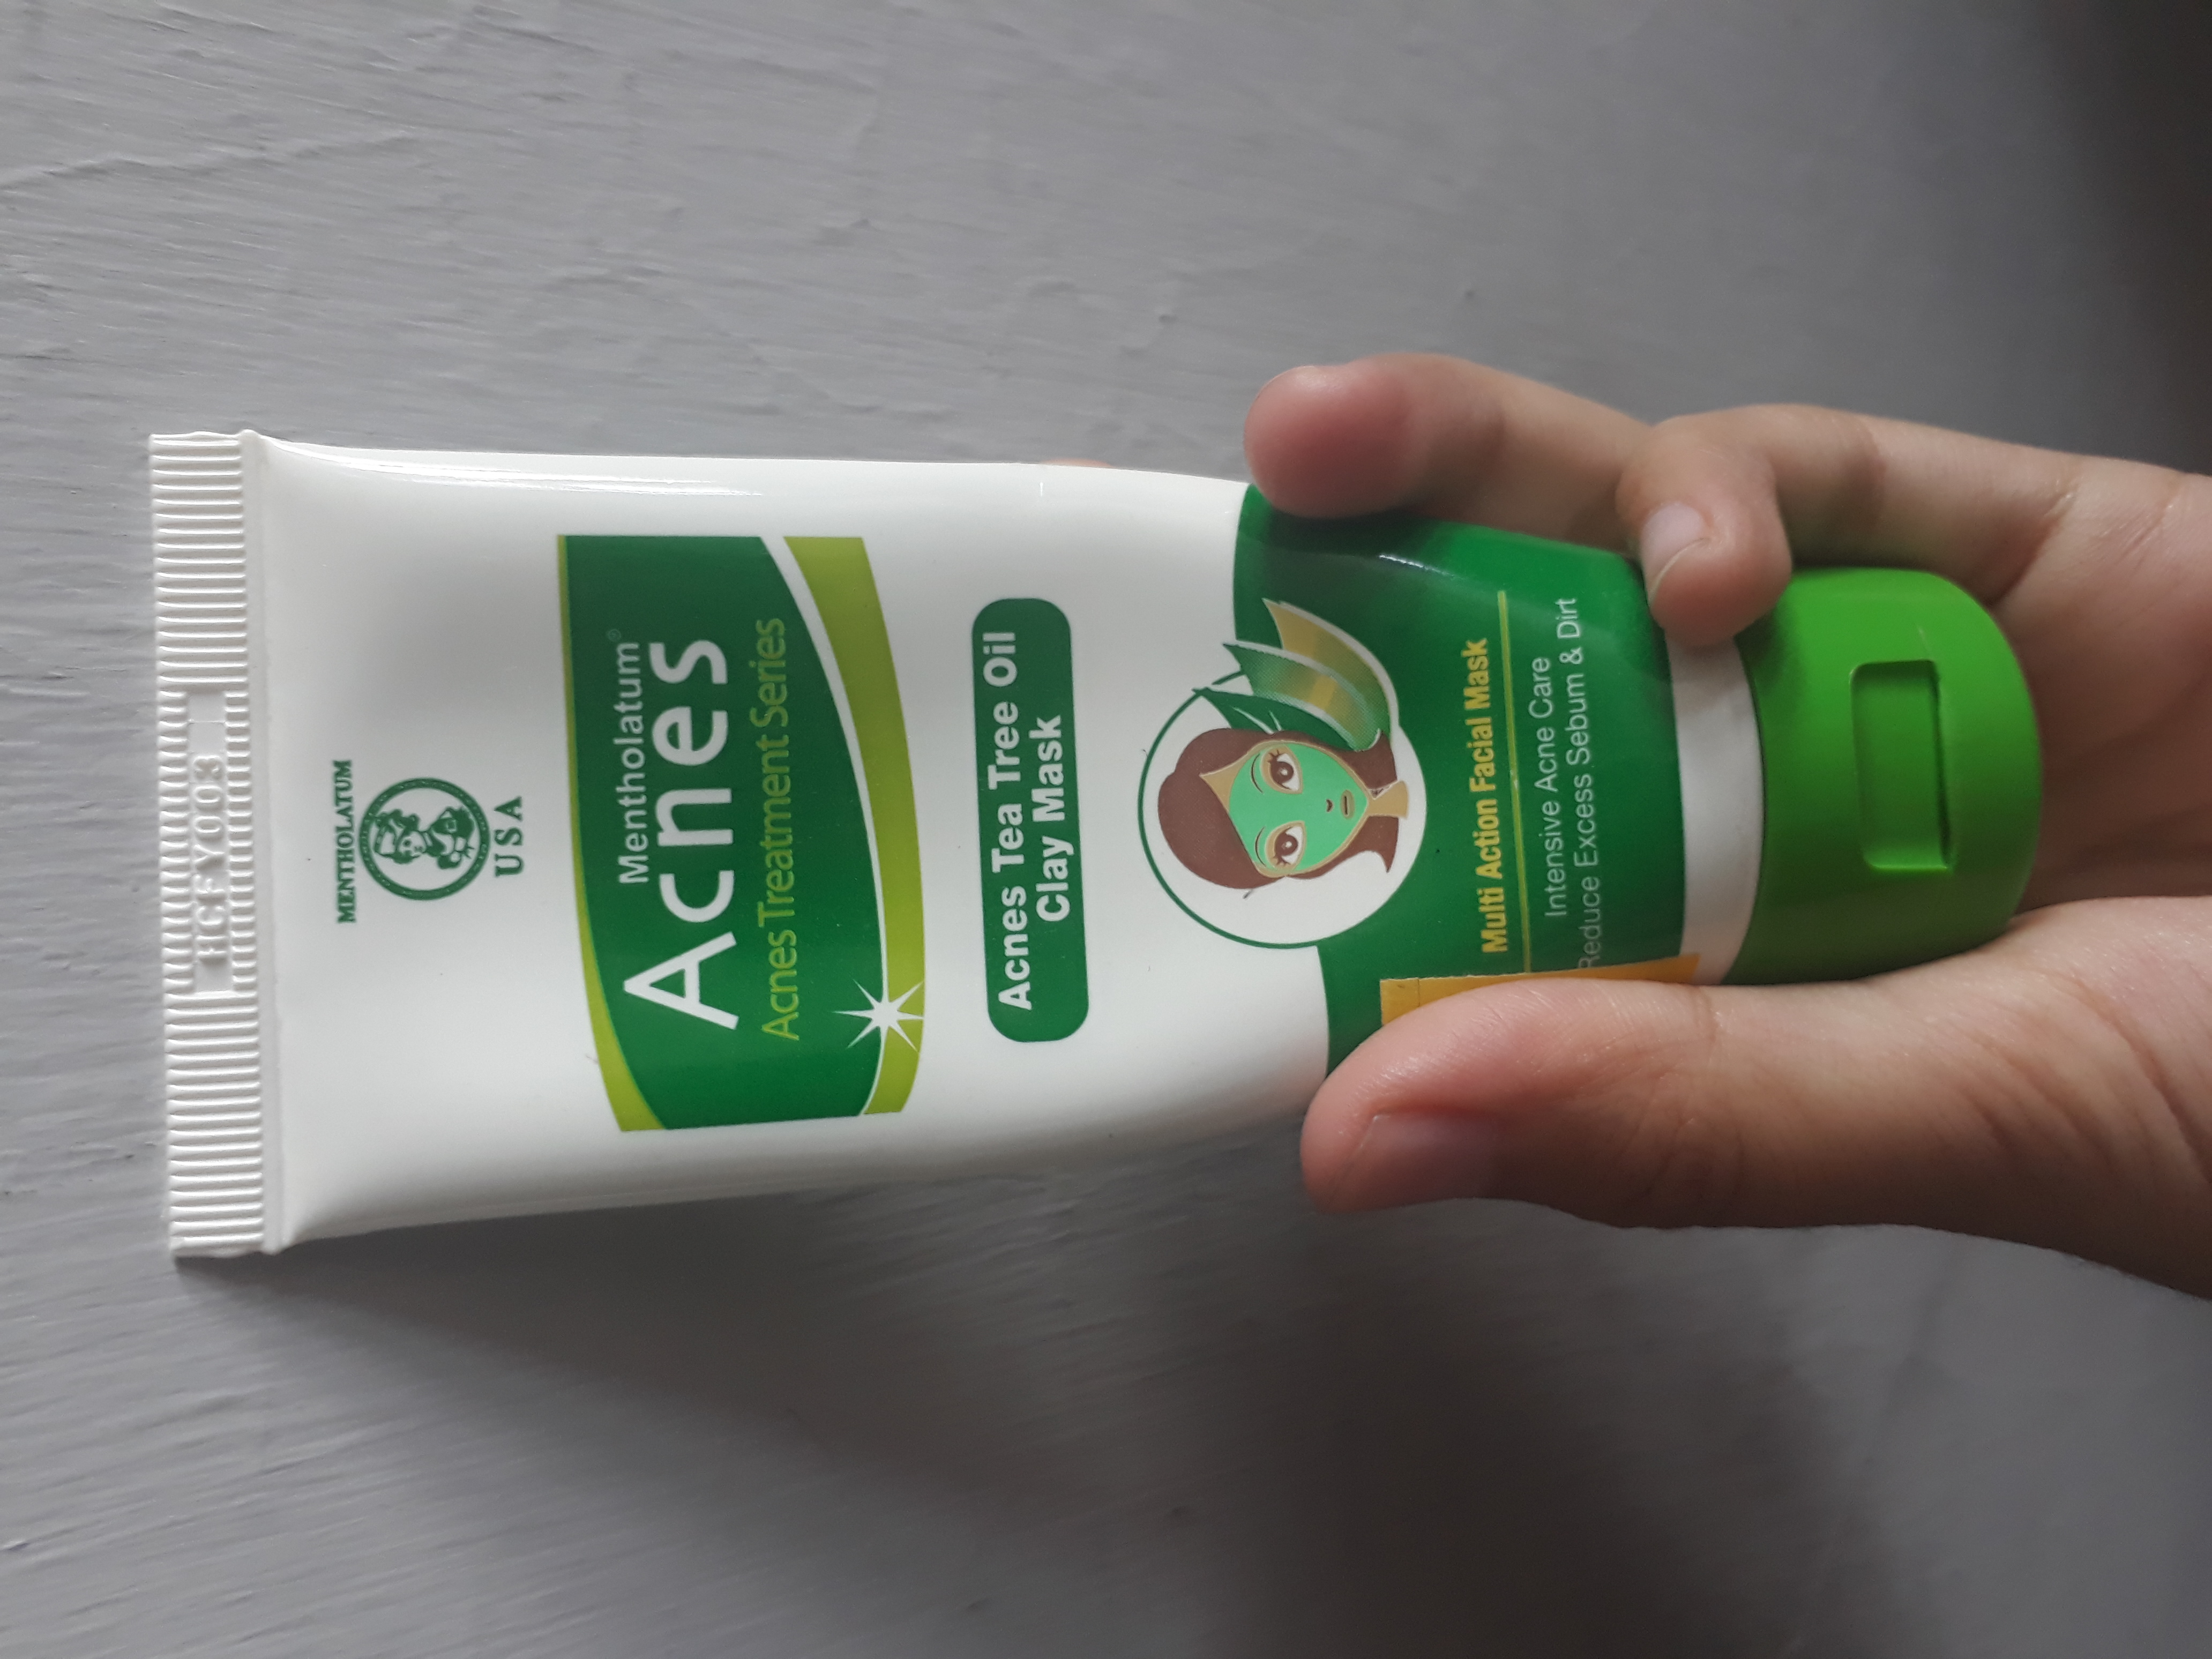 Review Acnes Tea Tree Oil Clay Mask Beauty Journal By Sociolla 50g Bagian Depan